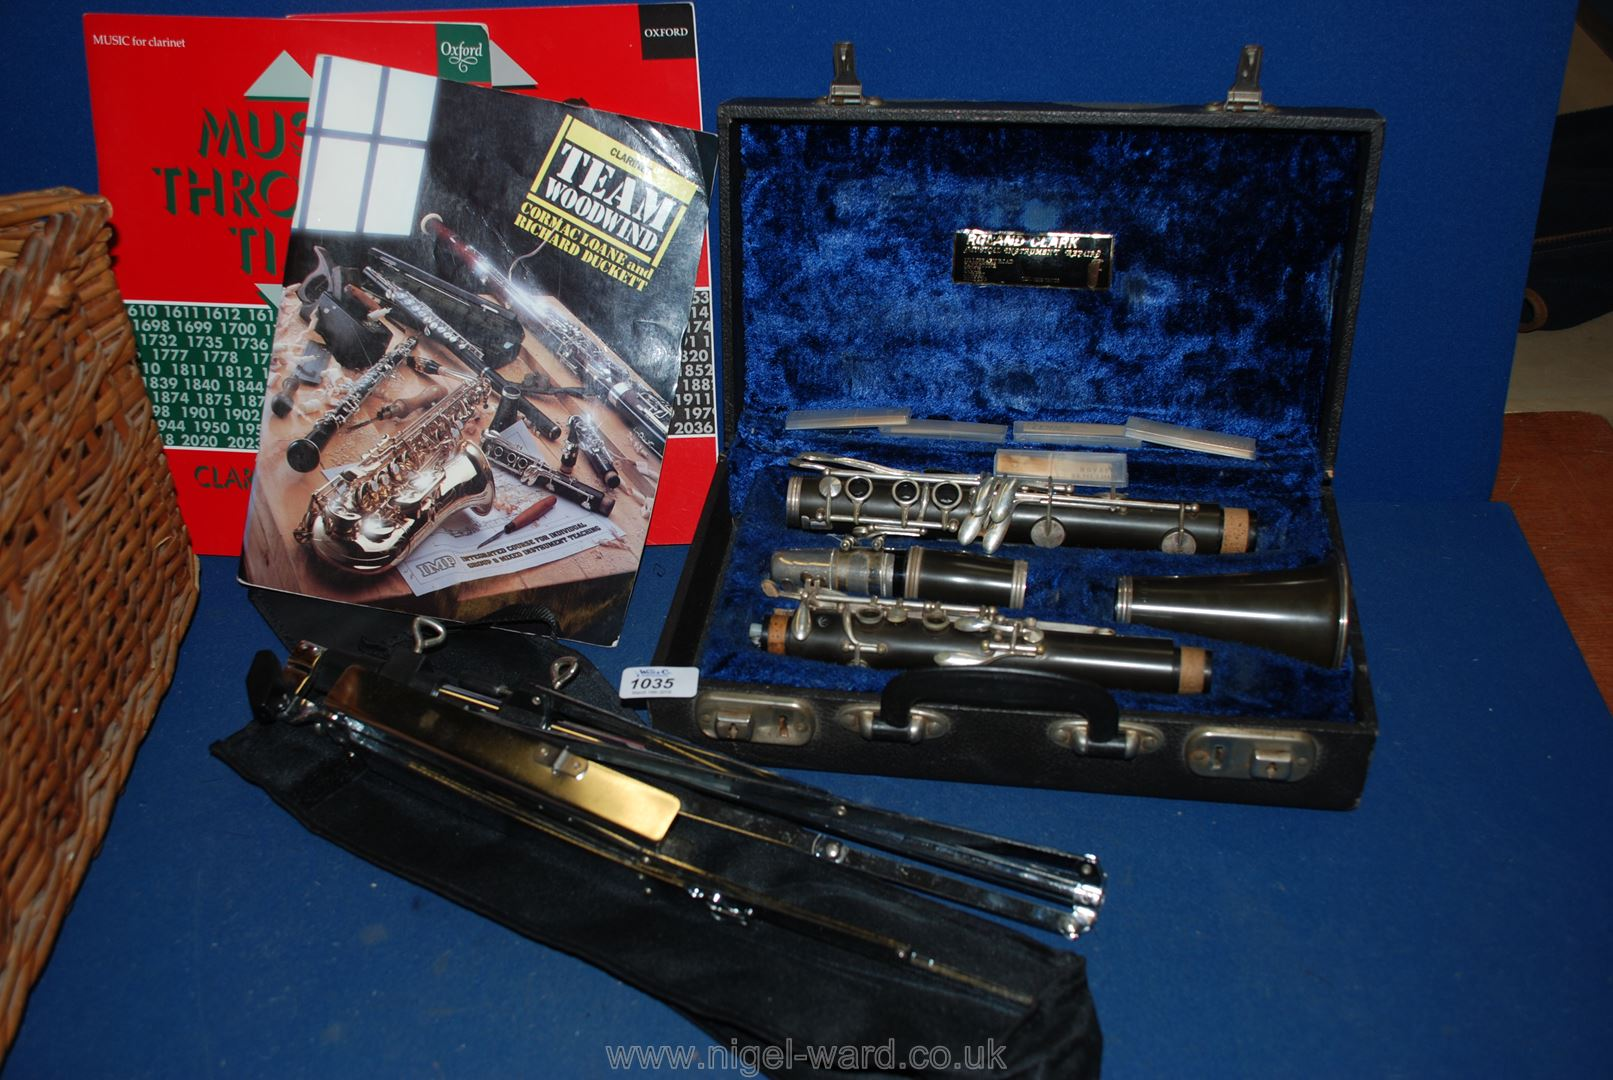 Lot 1035 - A Sapphire Clarinet in a fitted case, with instruction books and folding music stand.